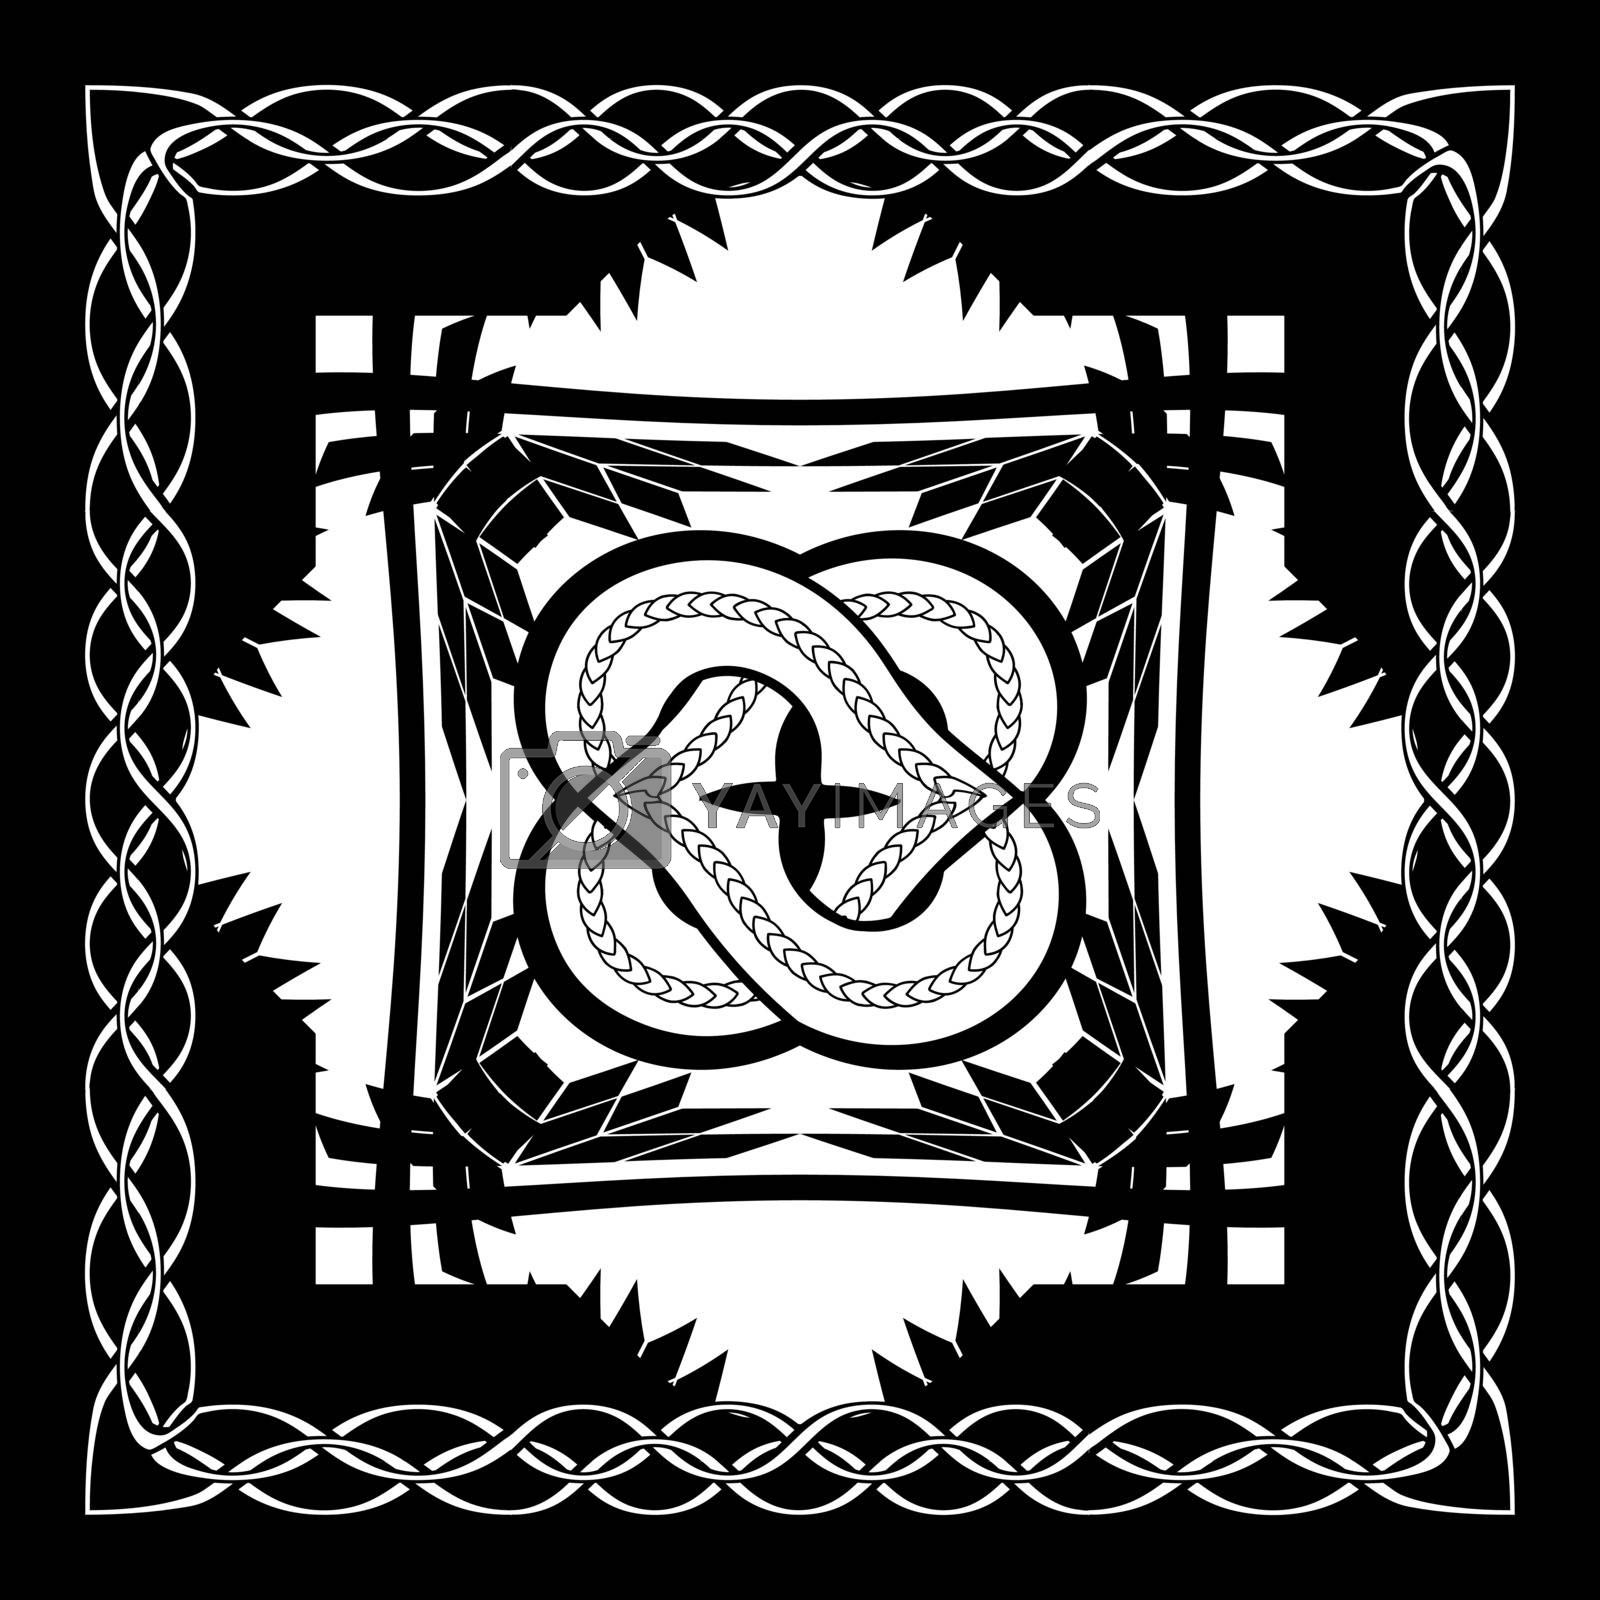 abstract monochrome gothic illustration with knotted flower in the black square framed by chain